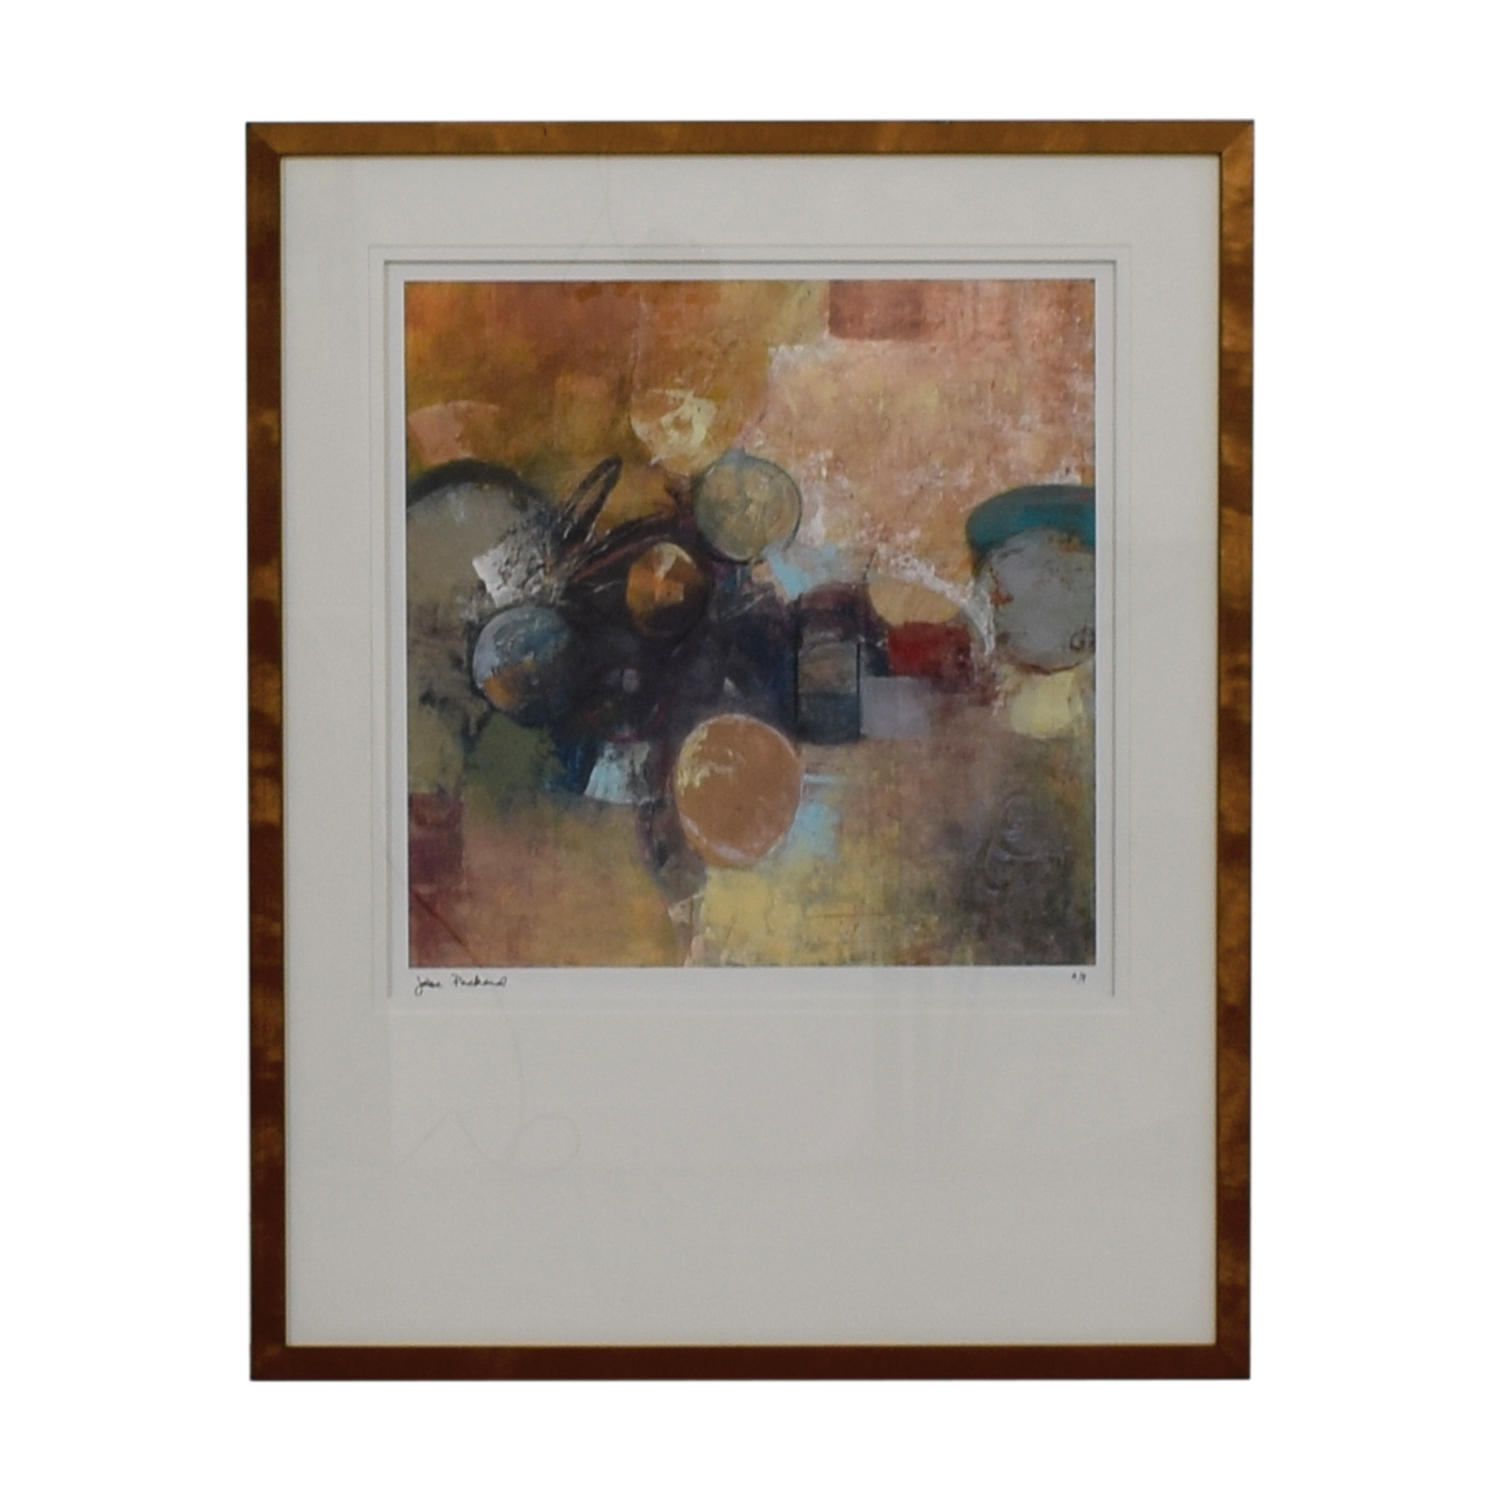 Ethan Allen Ethan Allen Limited Edition Framed Print second hand